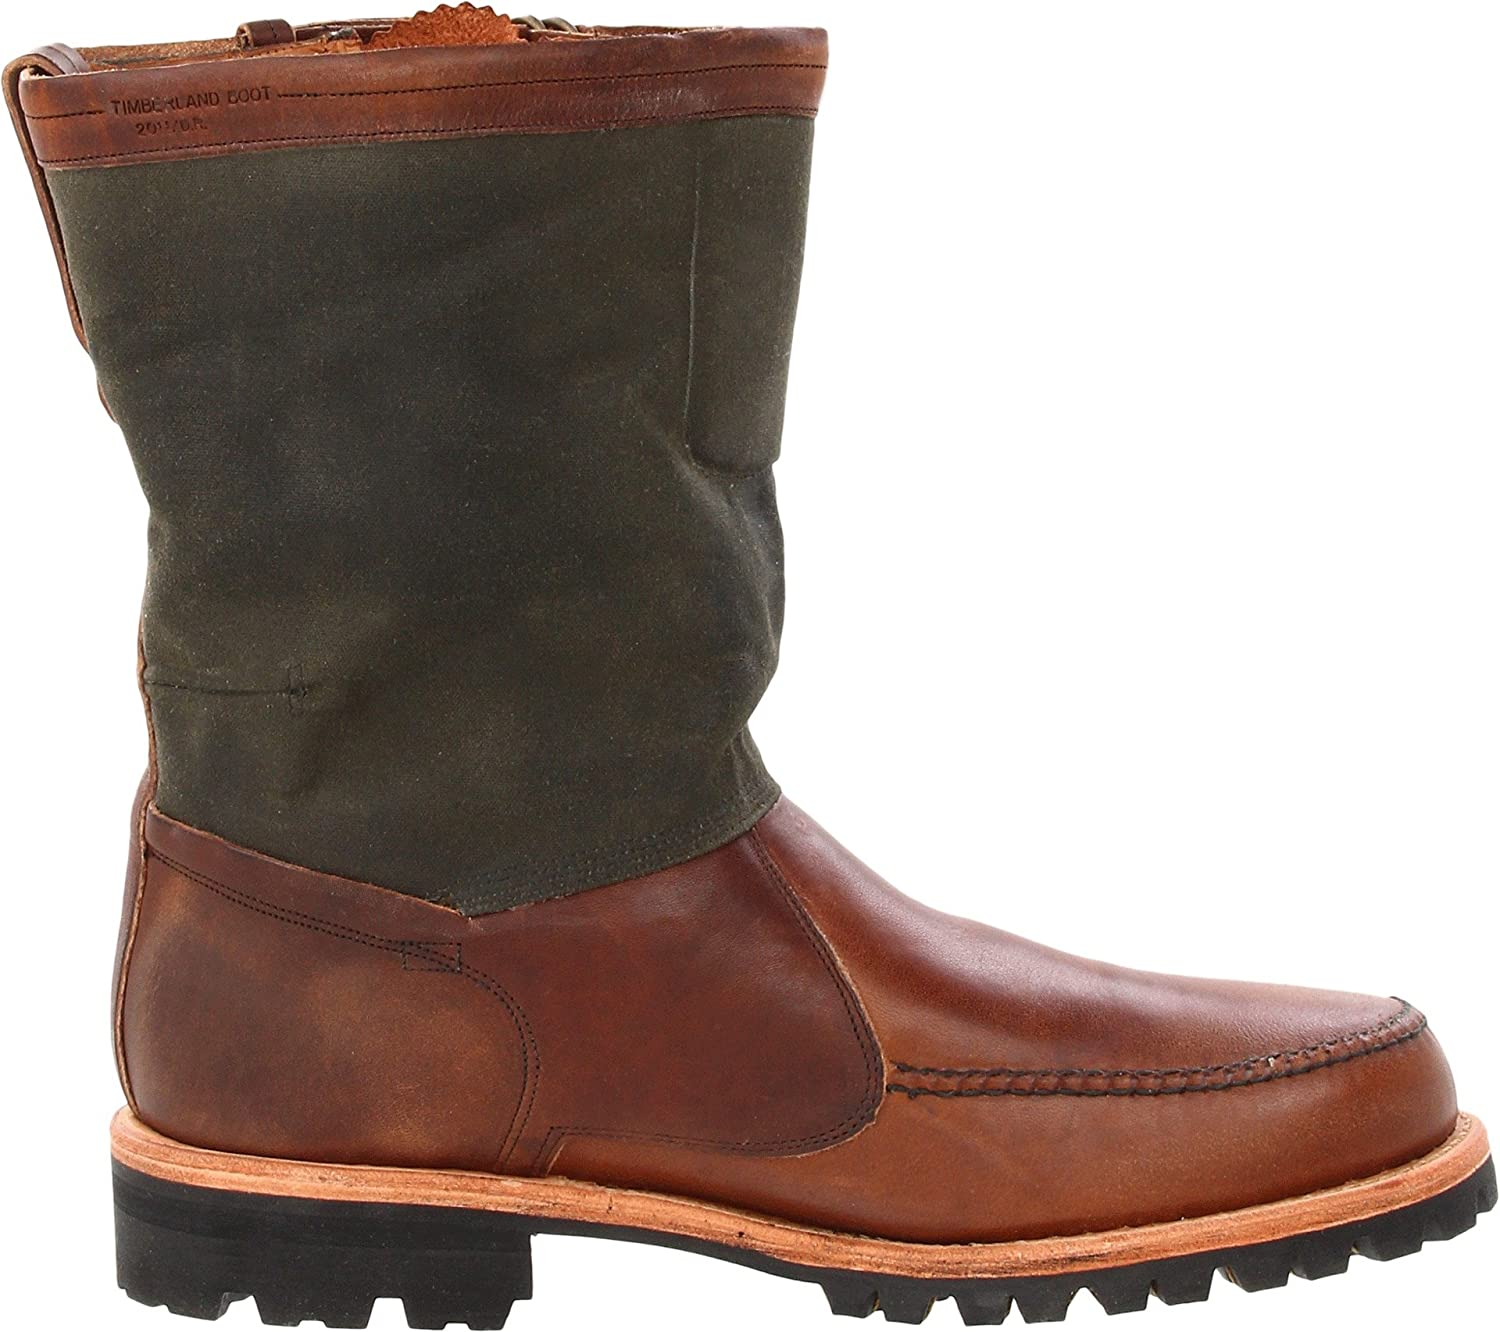 Timberland Boot Company Tackhead Boots Stiefel Stiefeletten